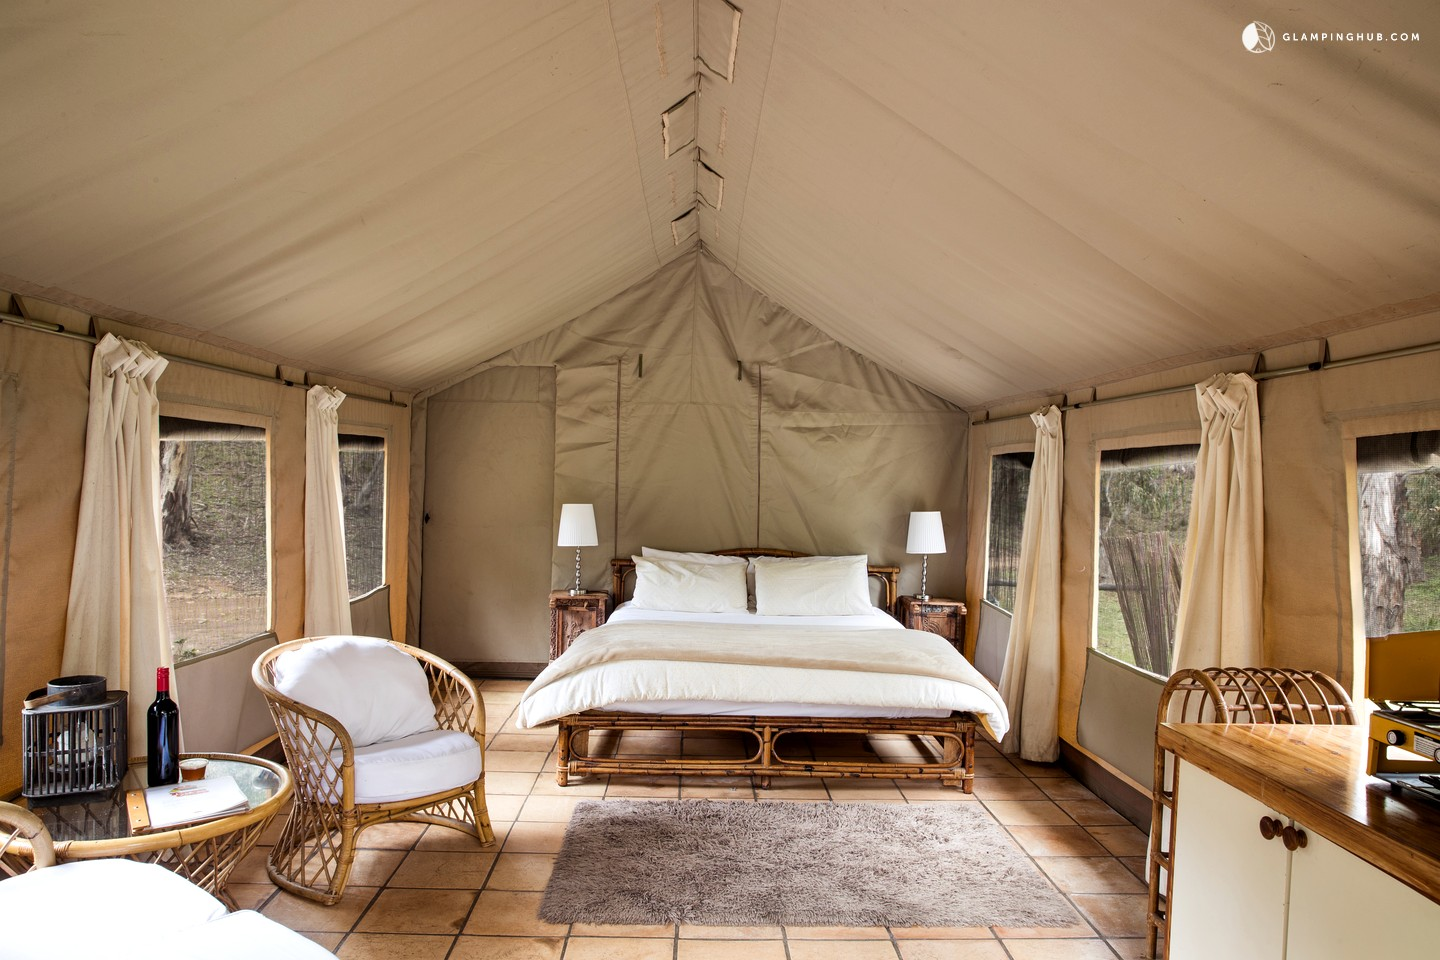 Rustic Luxury: <br>Glamping in Australia